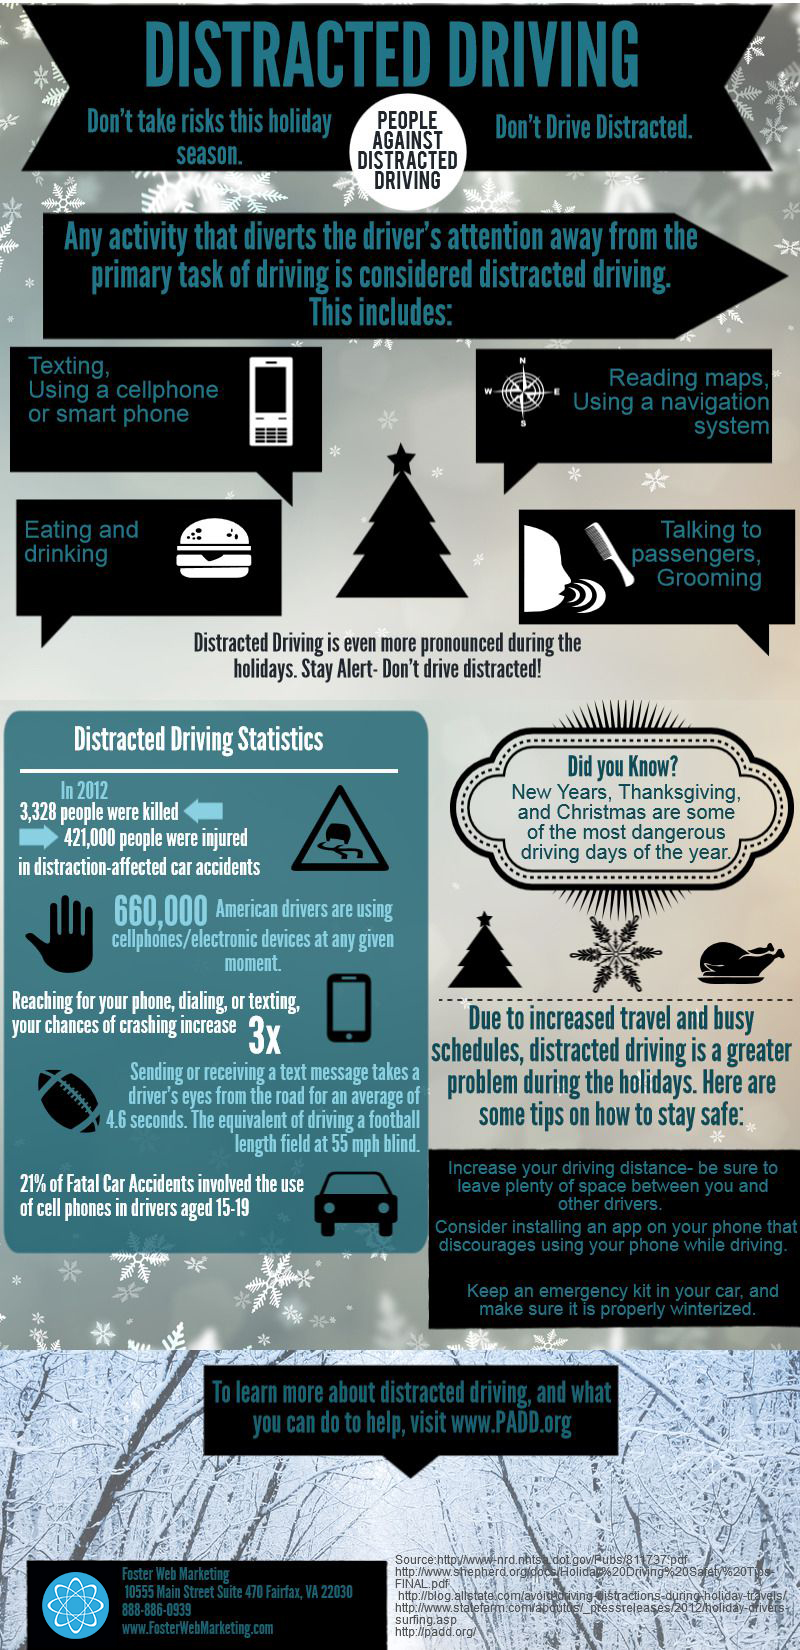 Distracted Driving Infographic Foster Web Marketing